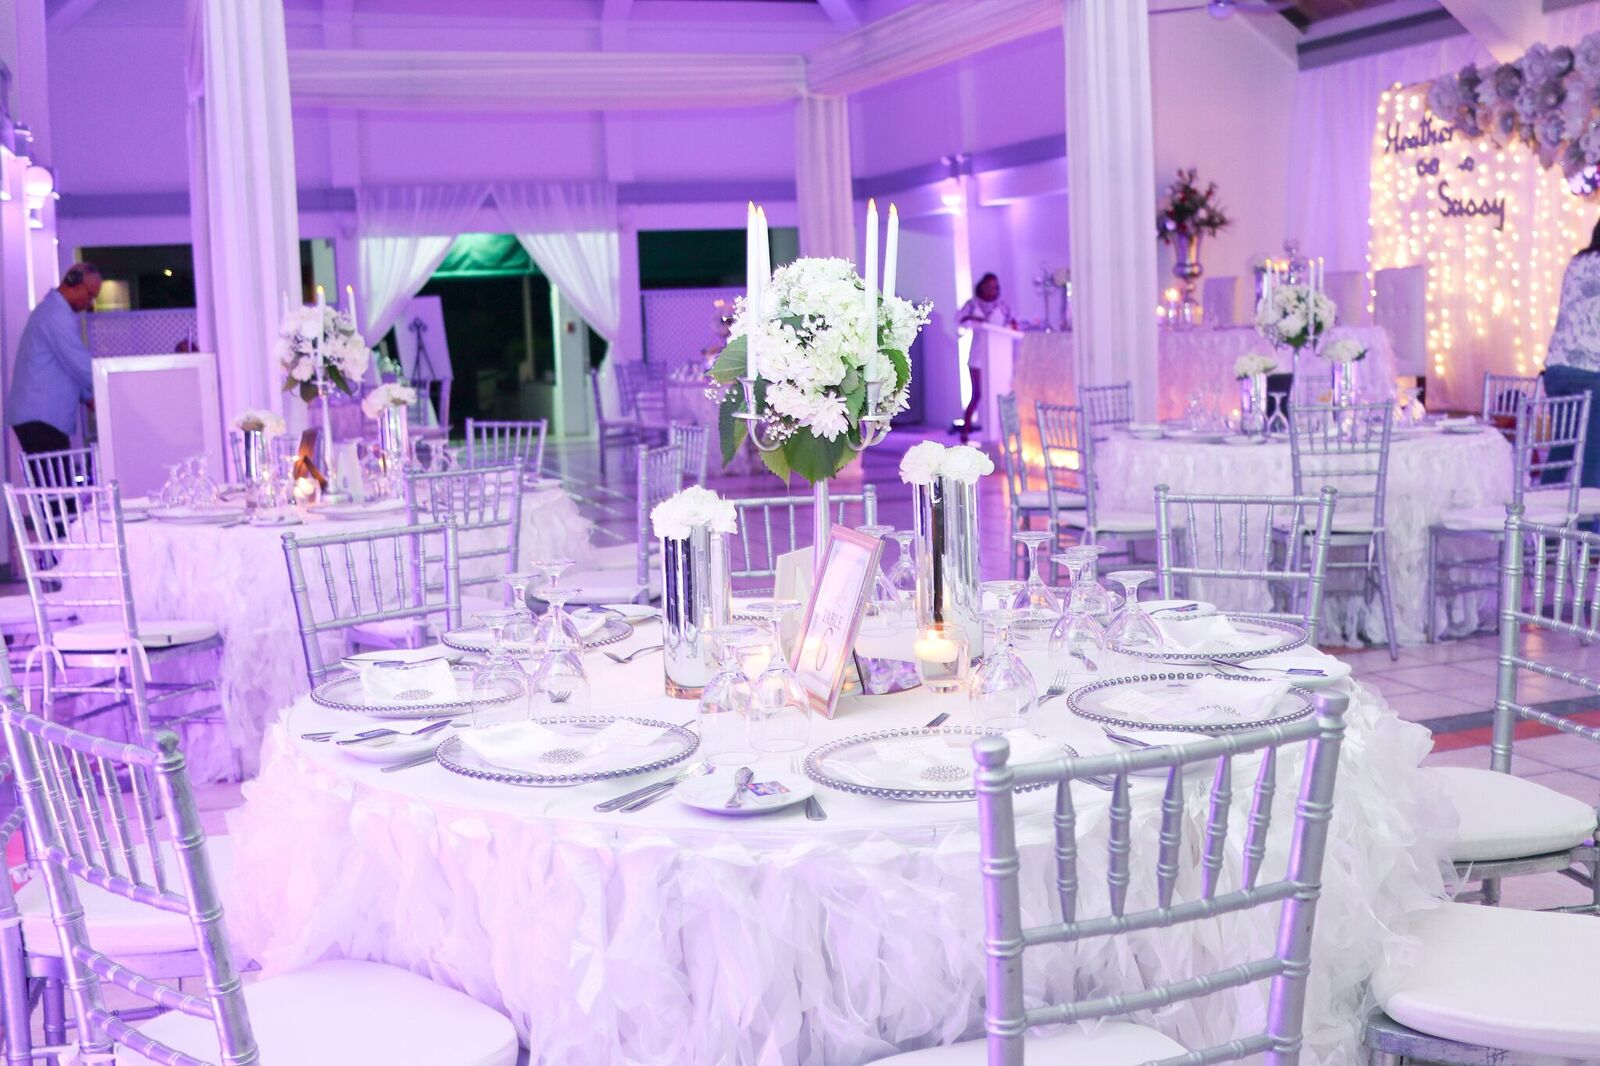 Wedding Decor at Caymanas Golf Club Kingston Jamaica